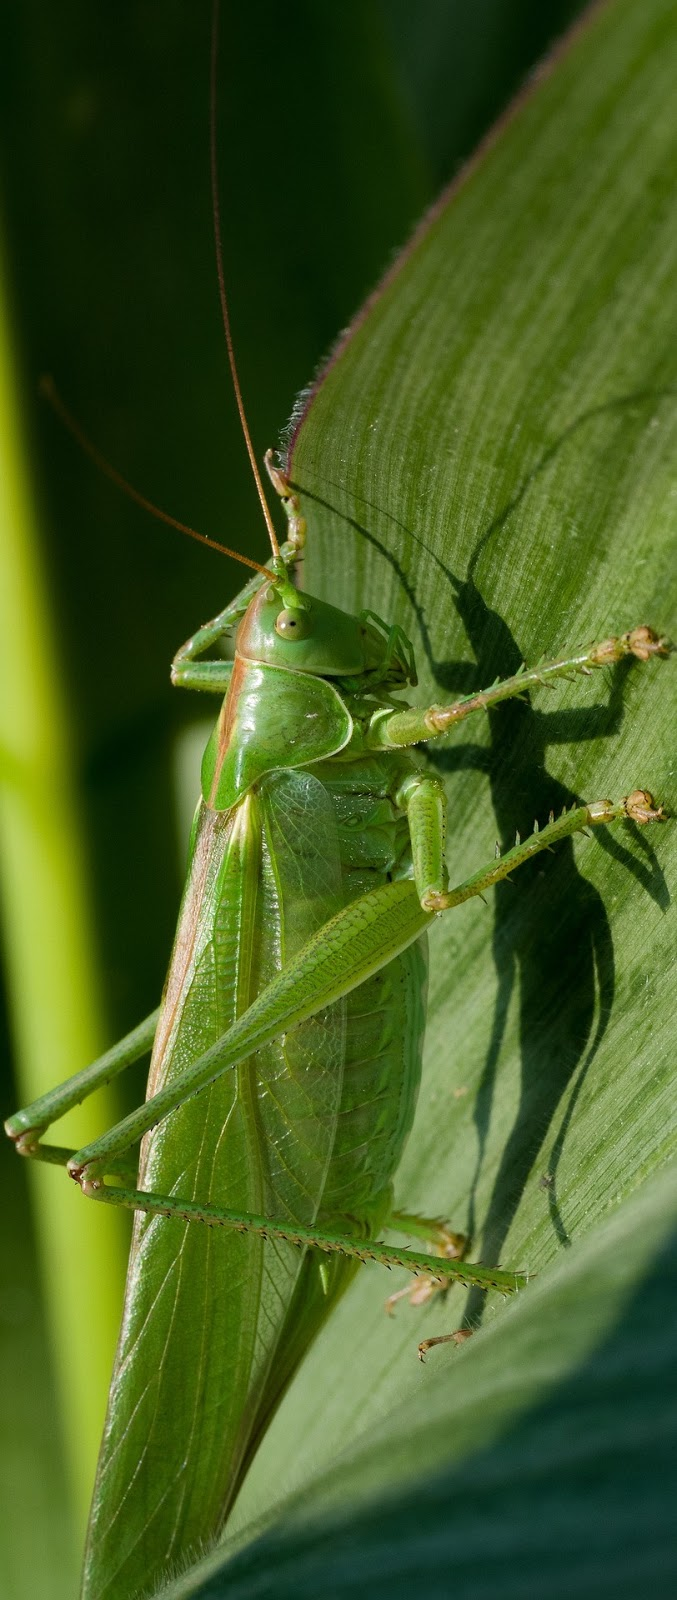 Photo of a grasshopper.